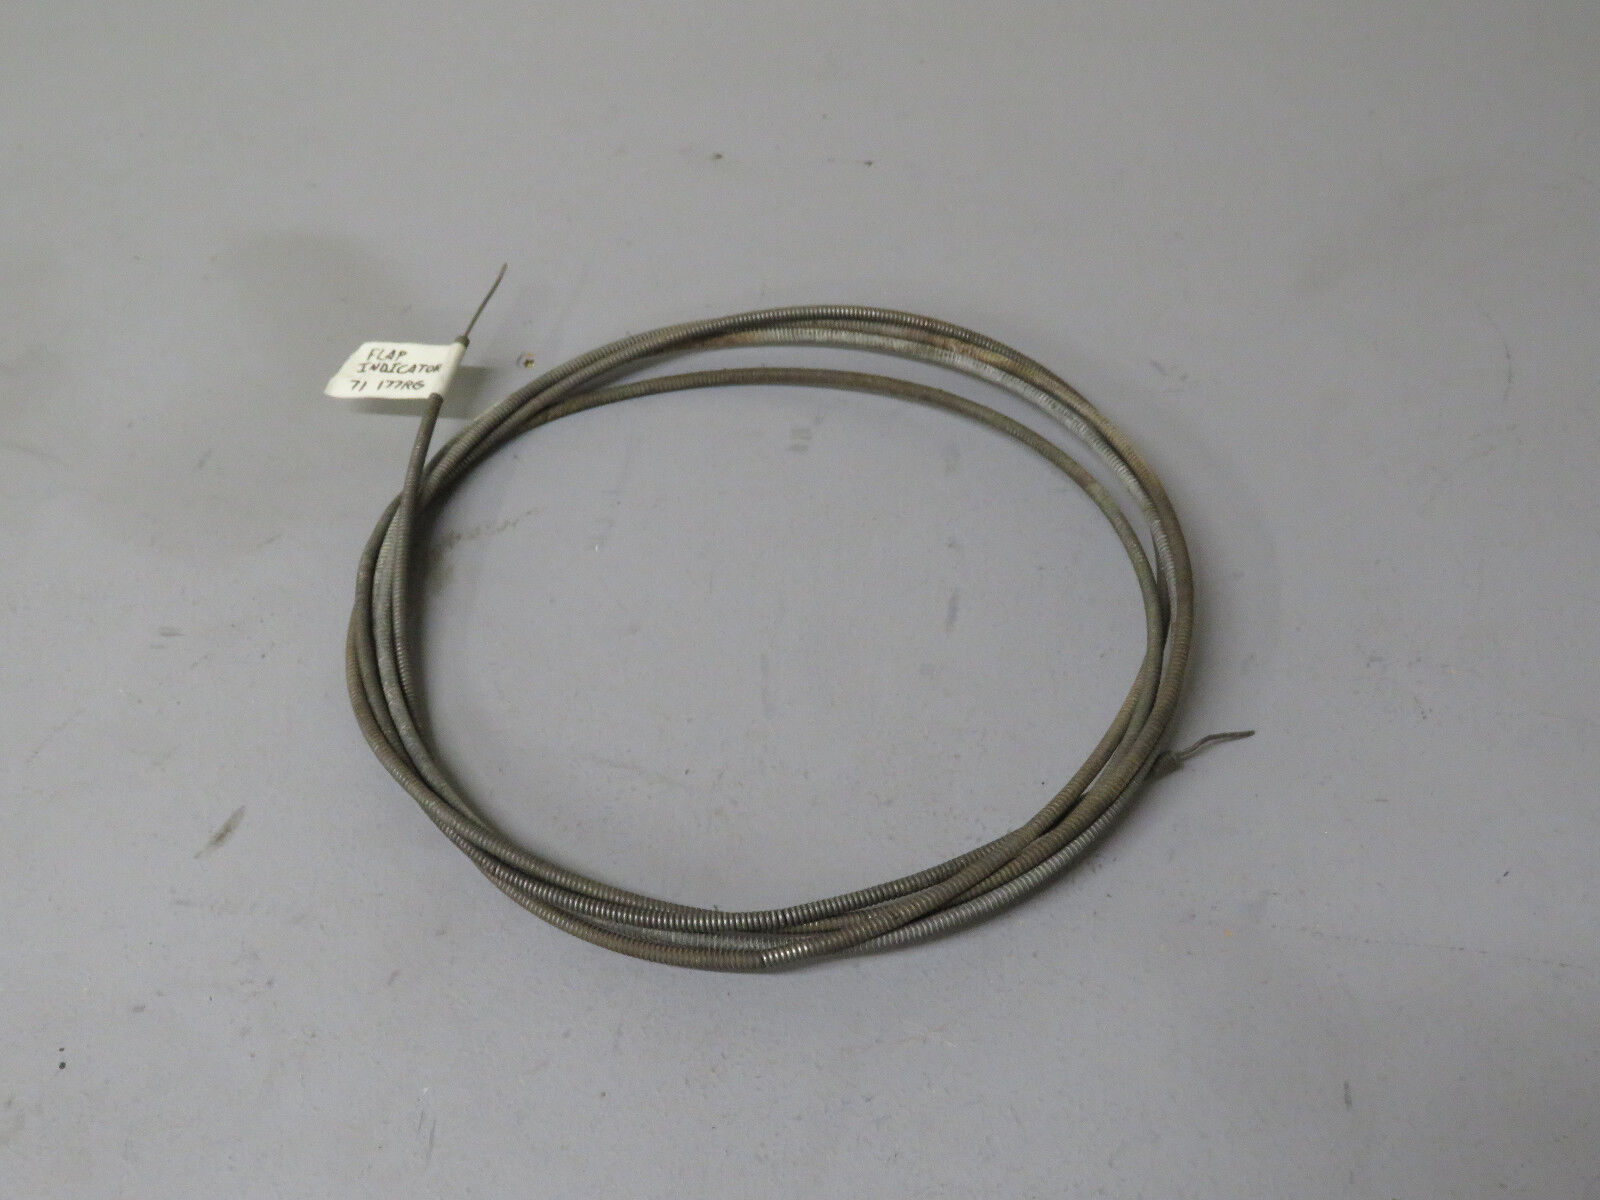 Cessna 177RG Flap Indicator Control Cable S1398-2